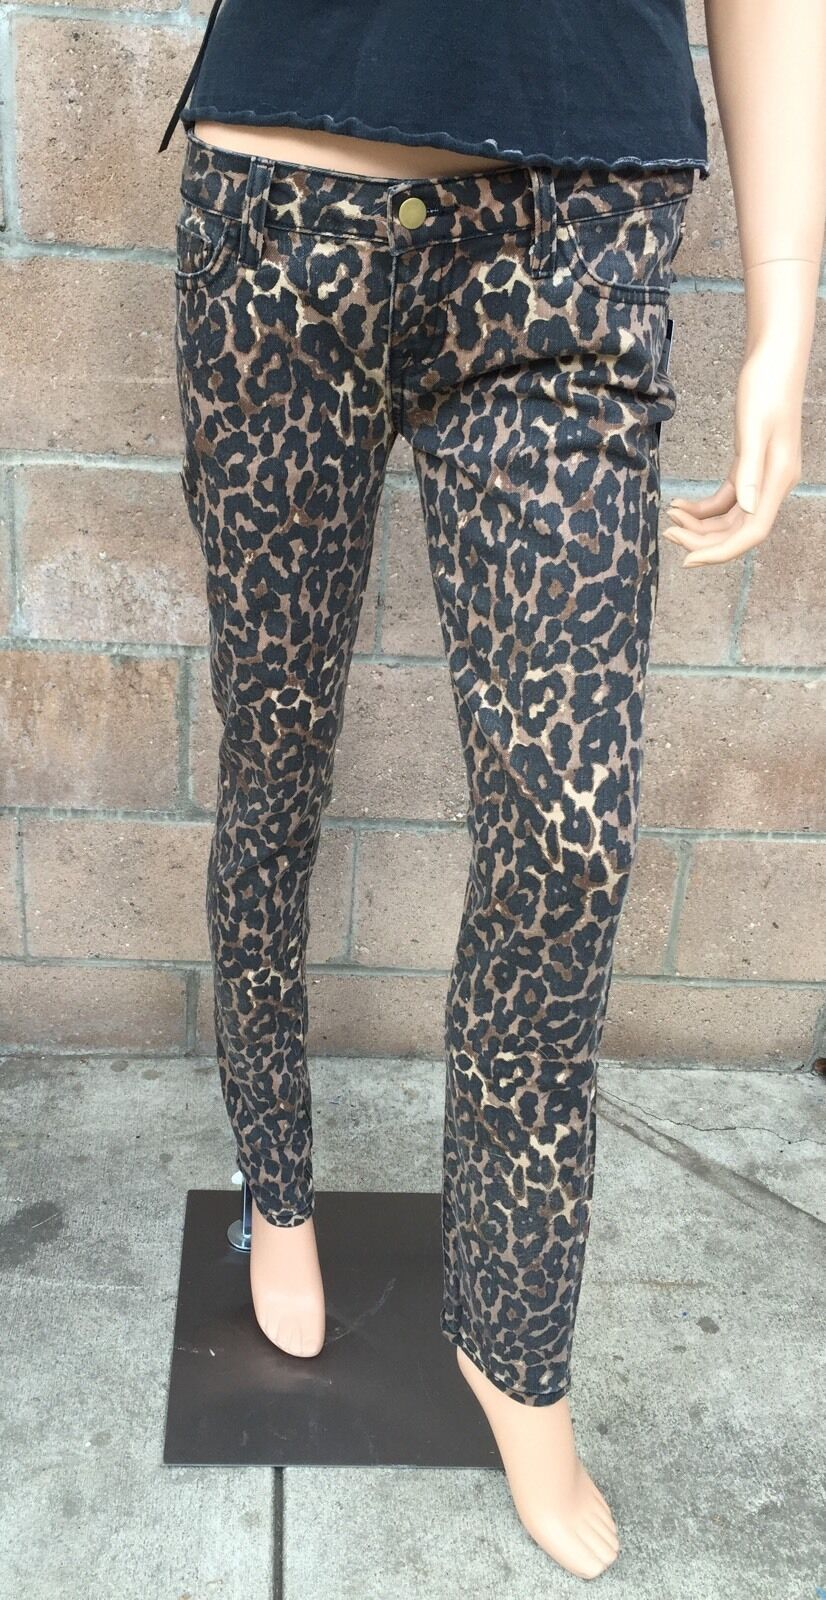 Rebecca Minkoff - Jessica w  cheetah size 4. gold zippers at ankles. cute